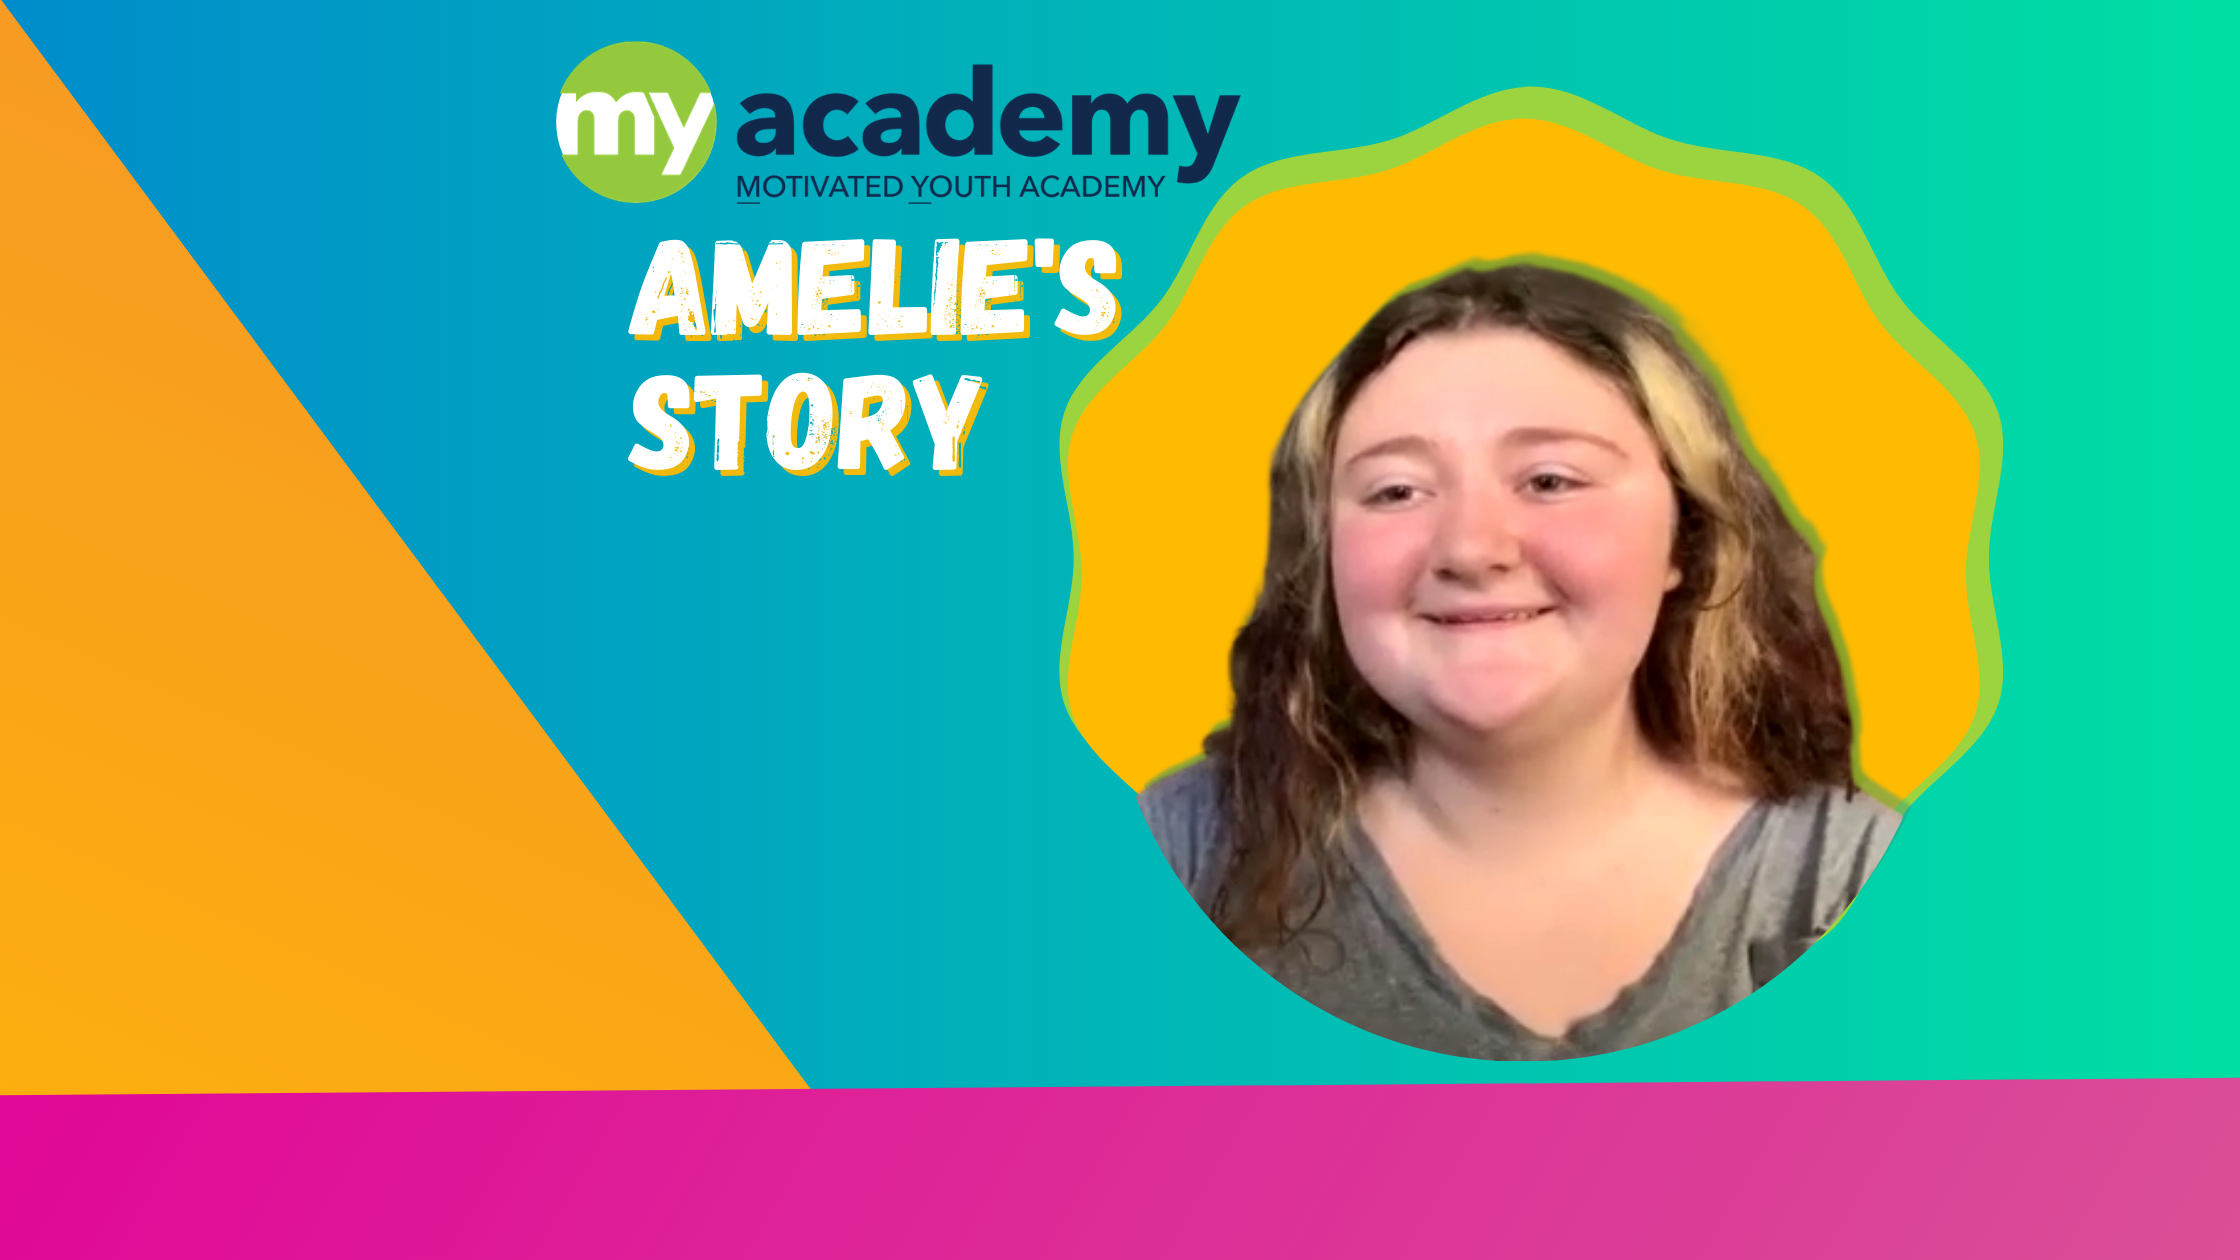 """Amelie's Story: """"MY Academy Made My Dreams Come True."""""""